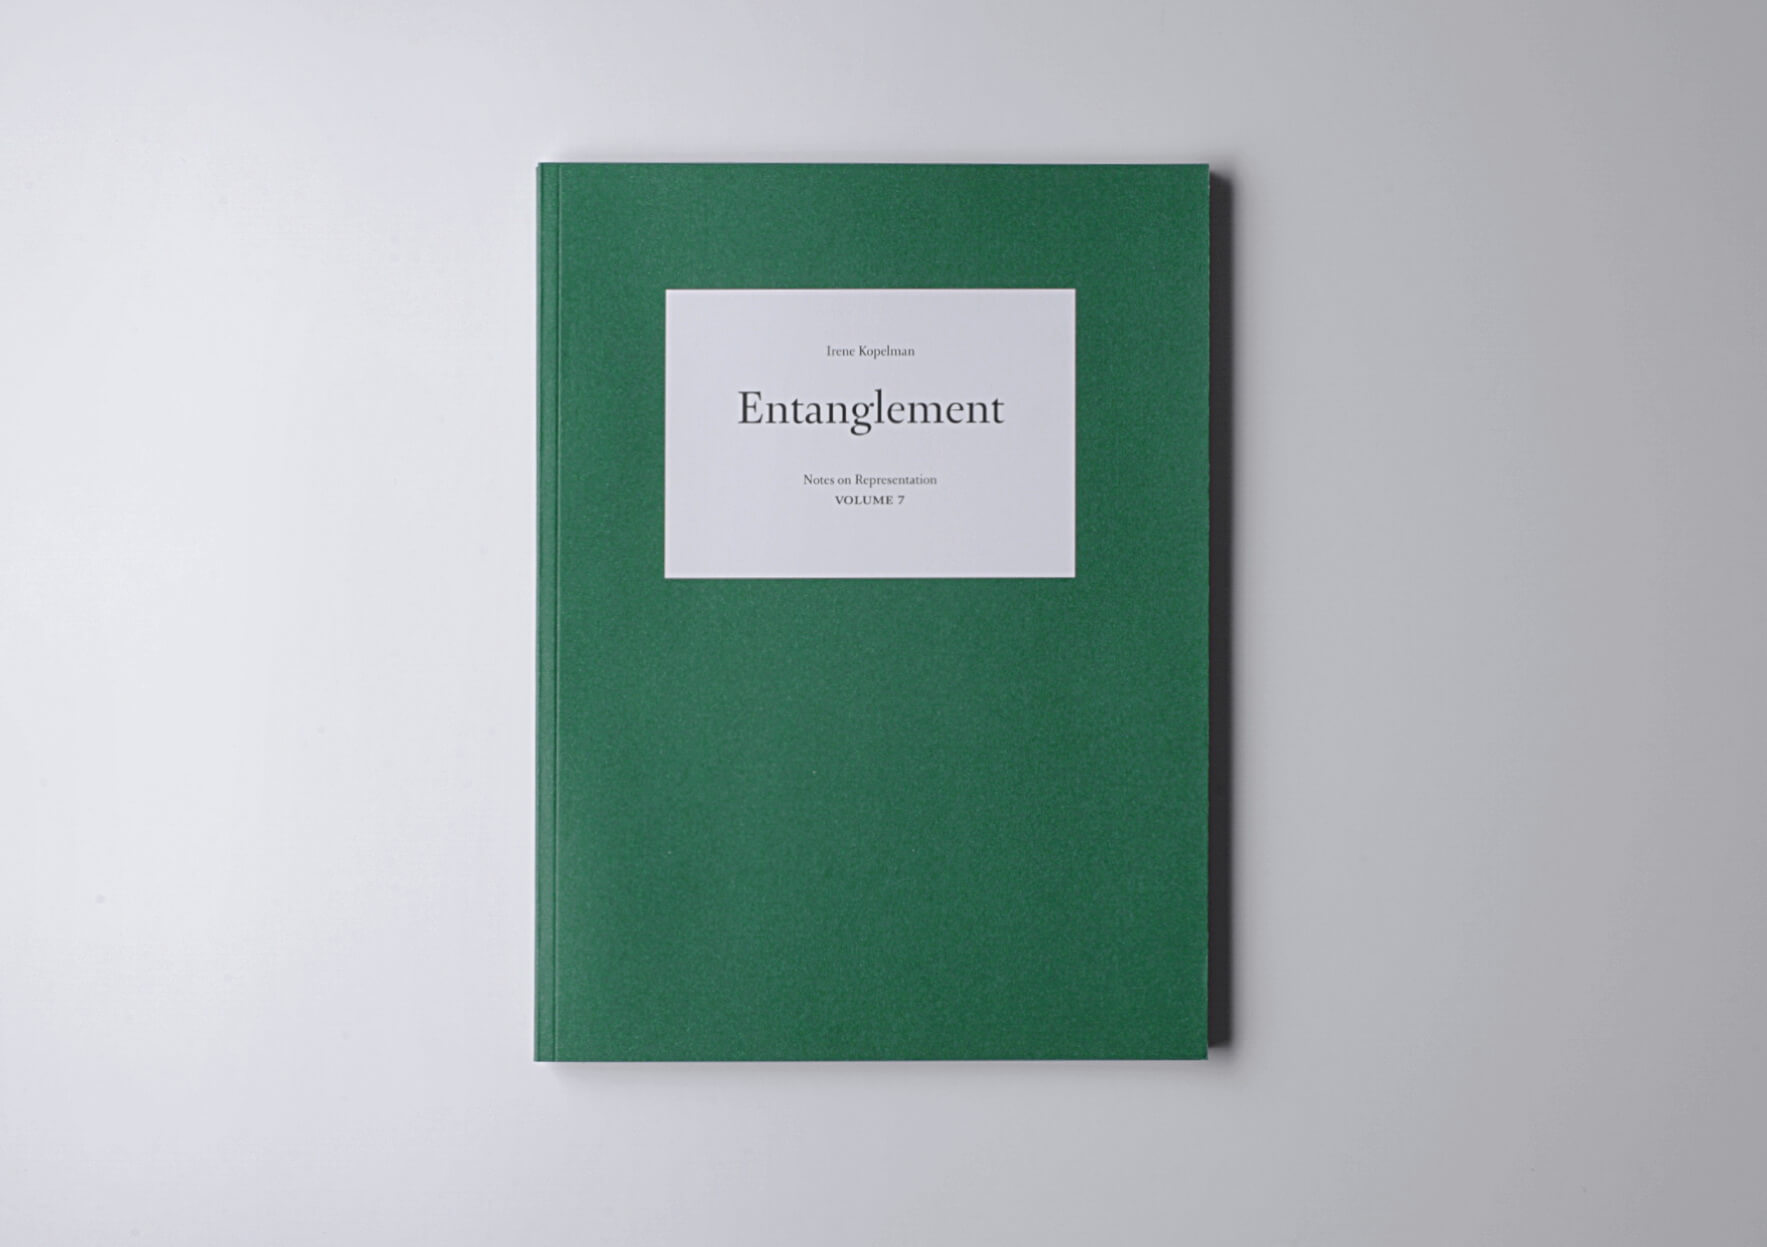 Irene Kopelman Entanglement. Notes on Representation V.7, 2015 28 x 21 cm, 152 p. Texts in English and Spanish. Ed. Roma Publications | Mother | ProjecteSD